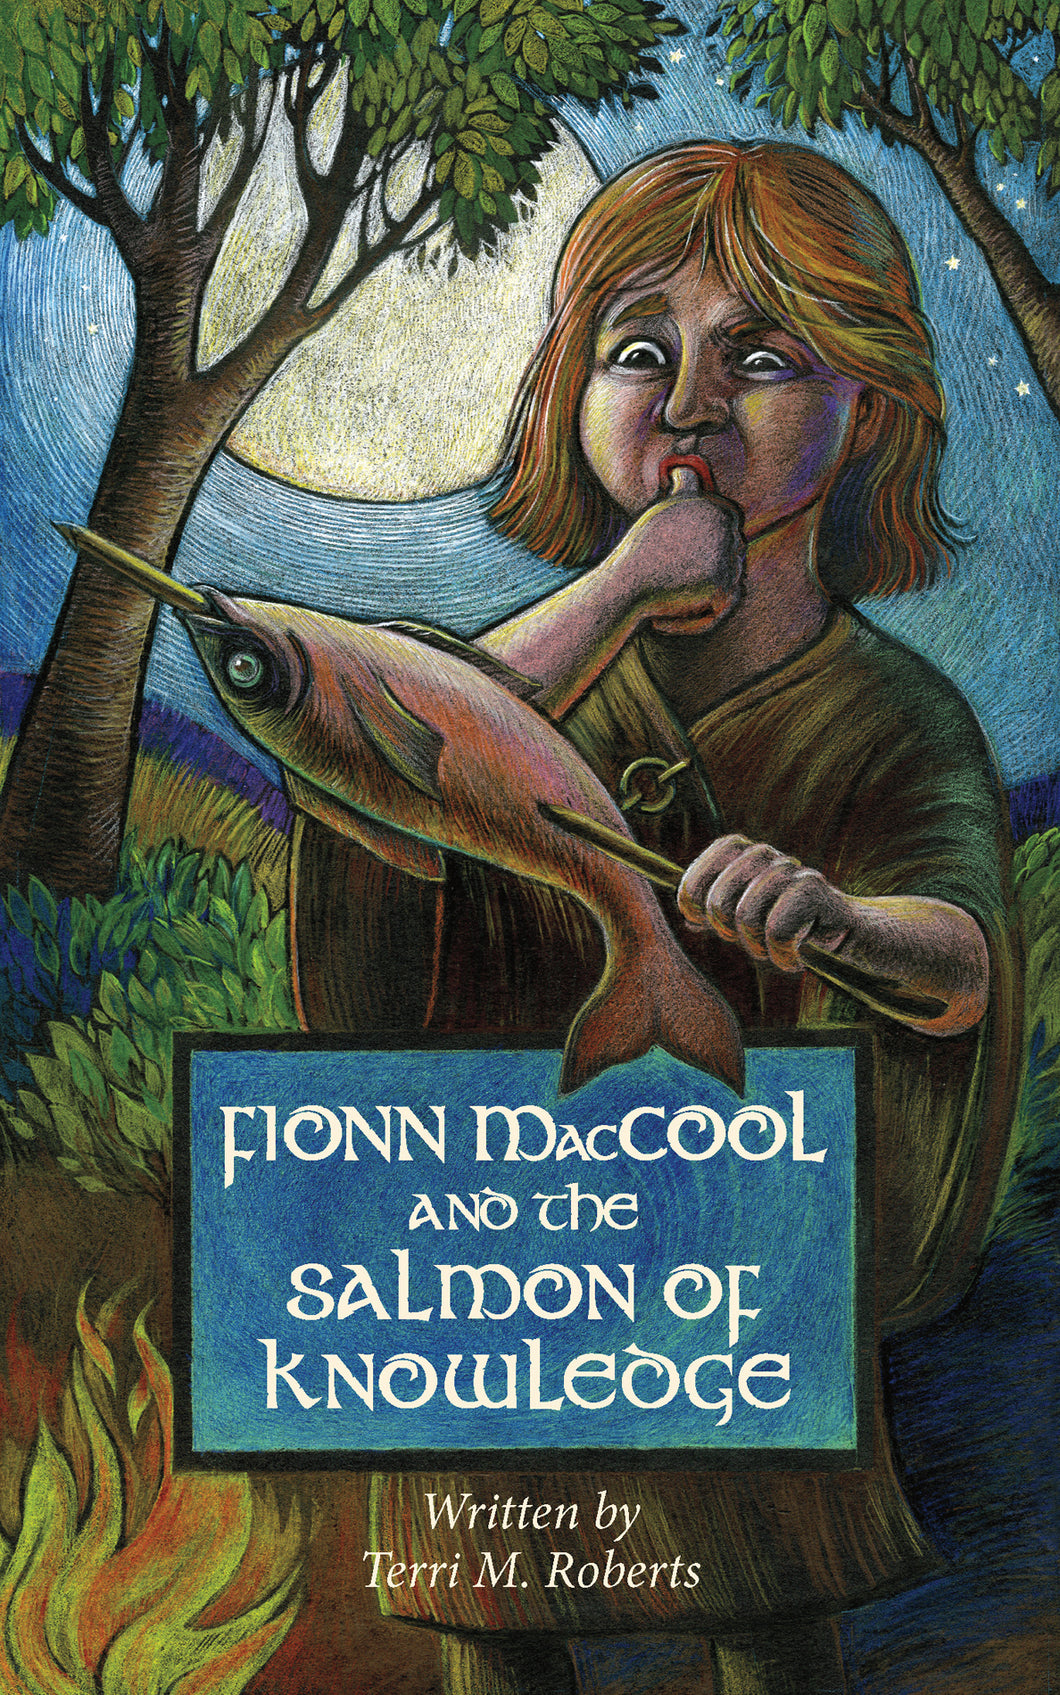 Fionn MacCool and the Salmon of Knowledge